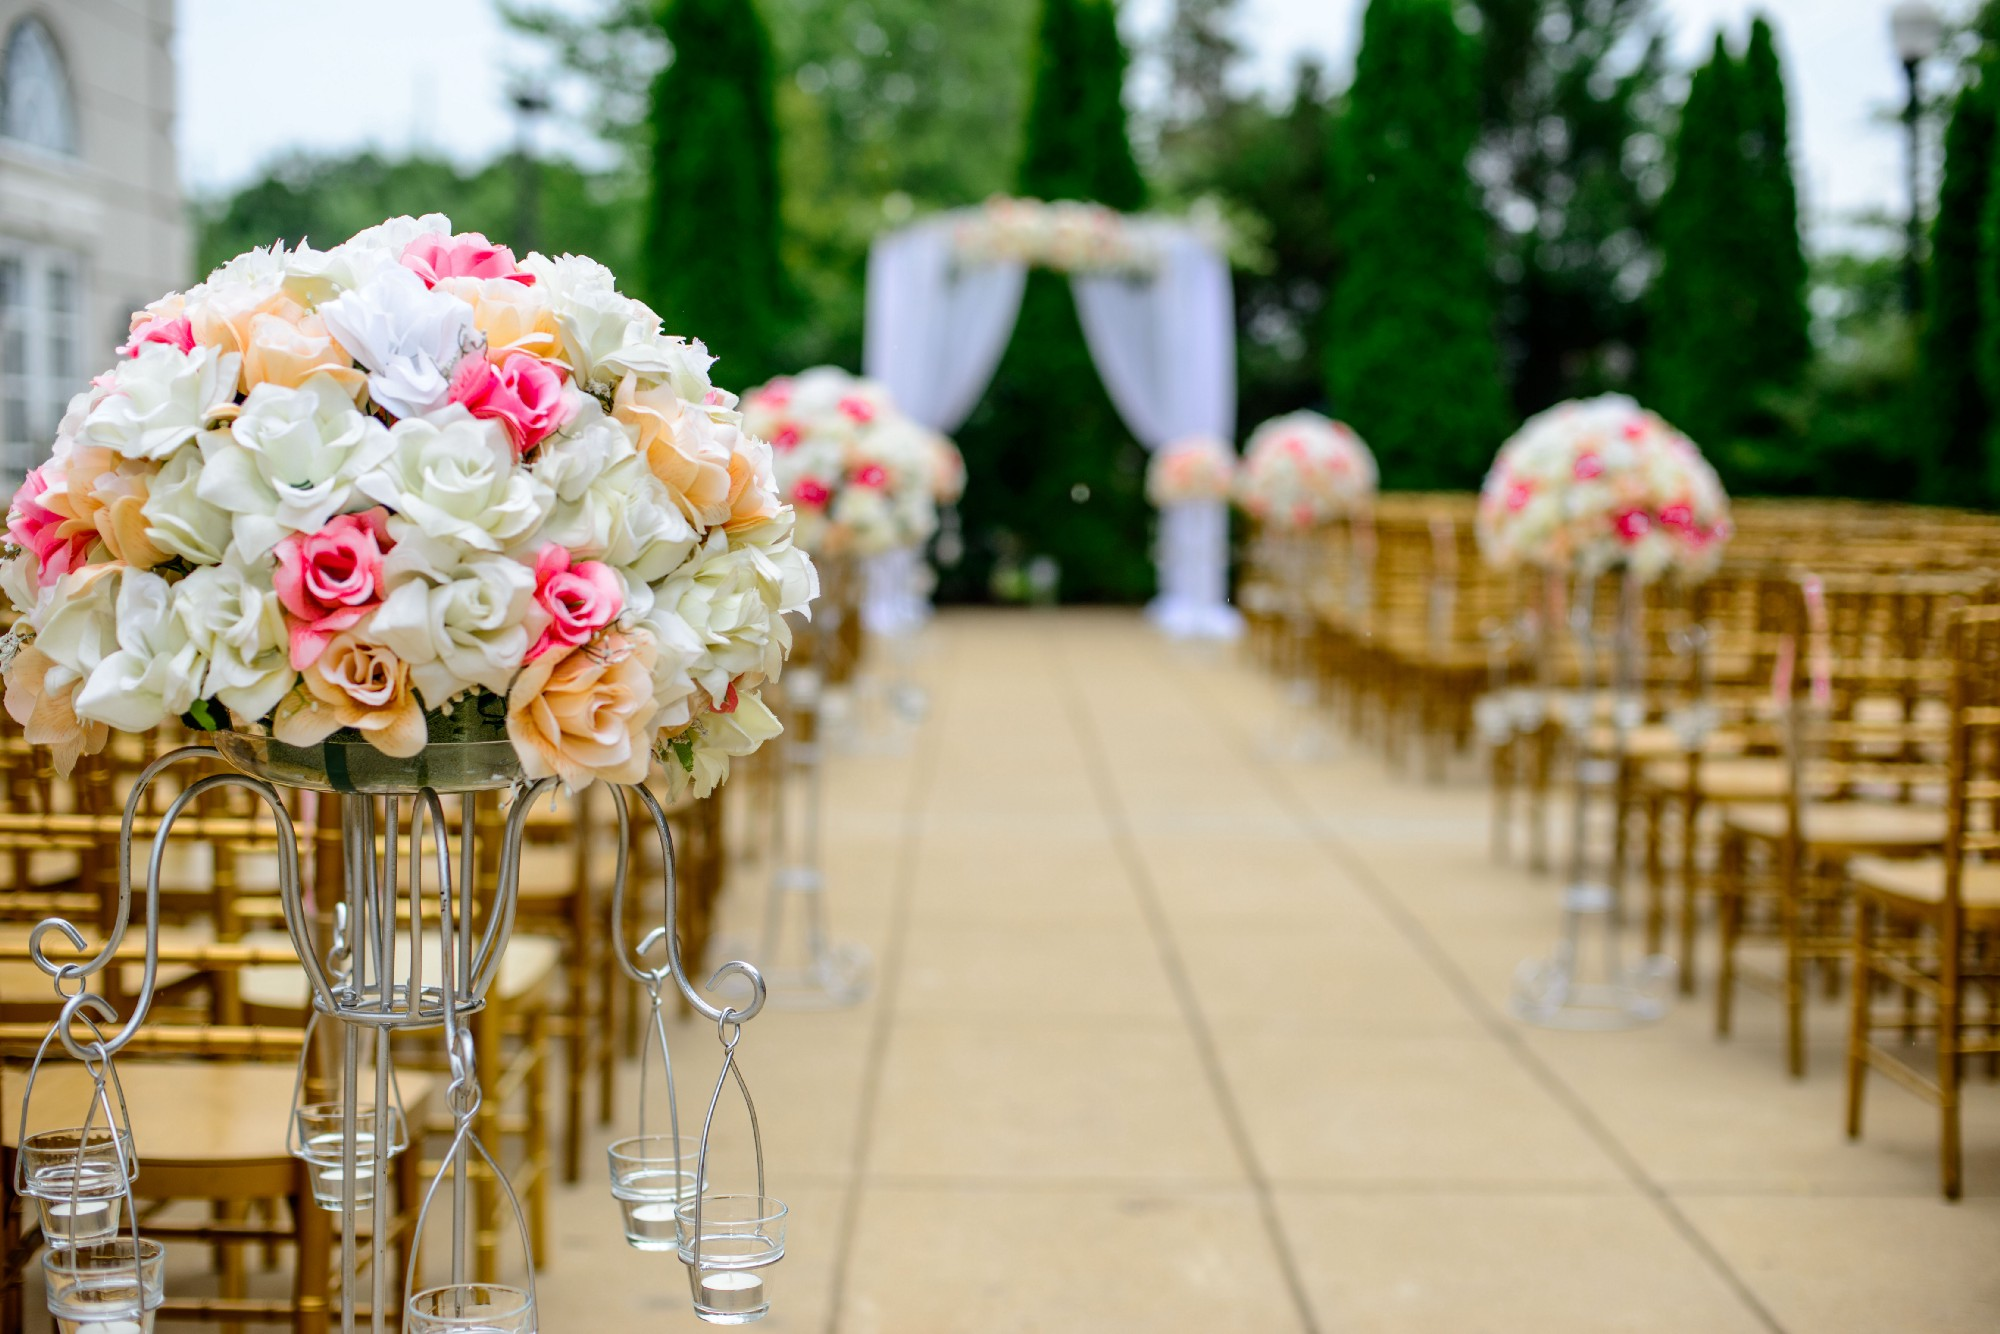 The setting for an outdoor wedding. Wooden seats have been lined up either side of the aisle. In the foreground is a large arrangement of pink, orange, and white flowers. At the fair end of the aisle stands an arch of white fabric. There are no people, as we are waiting for things to begin.